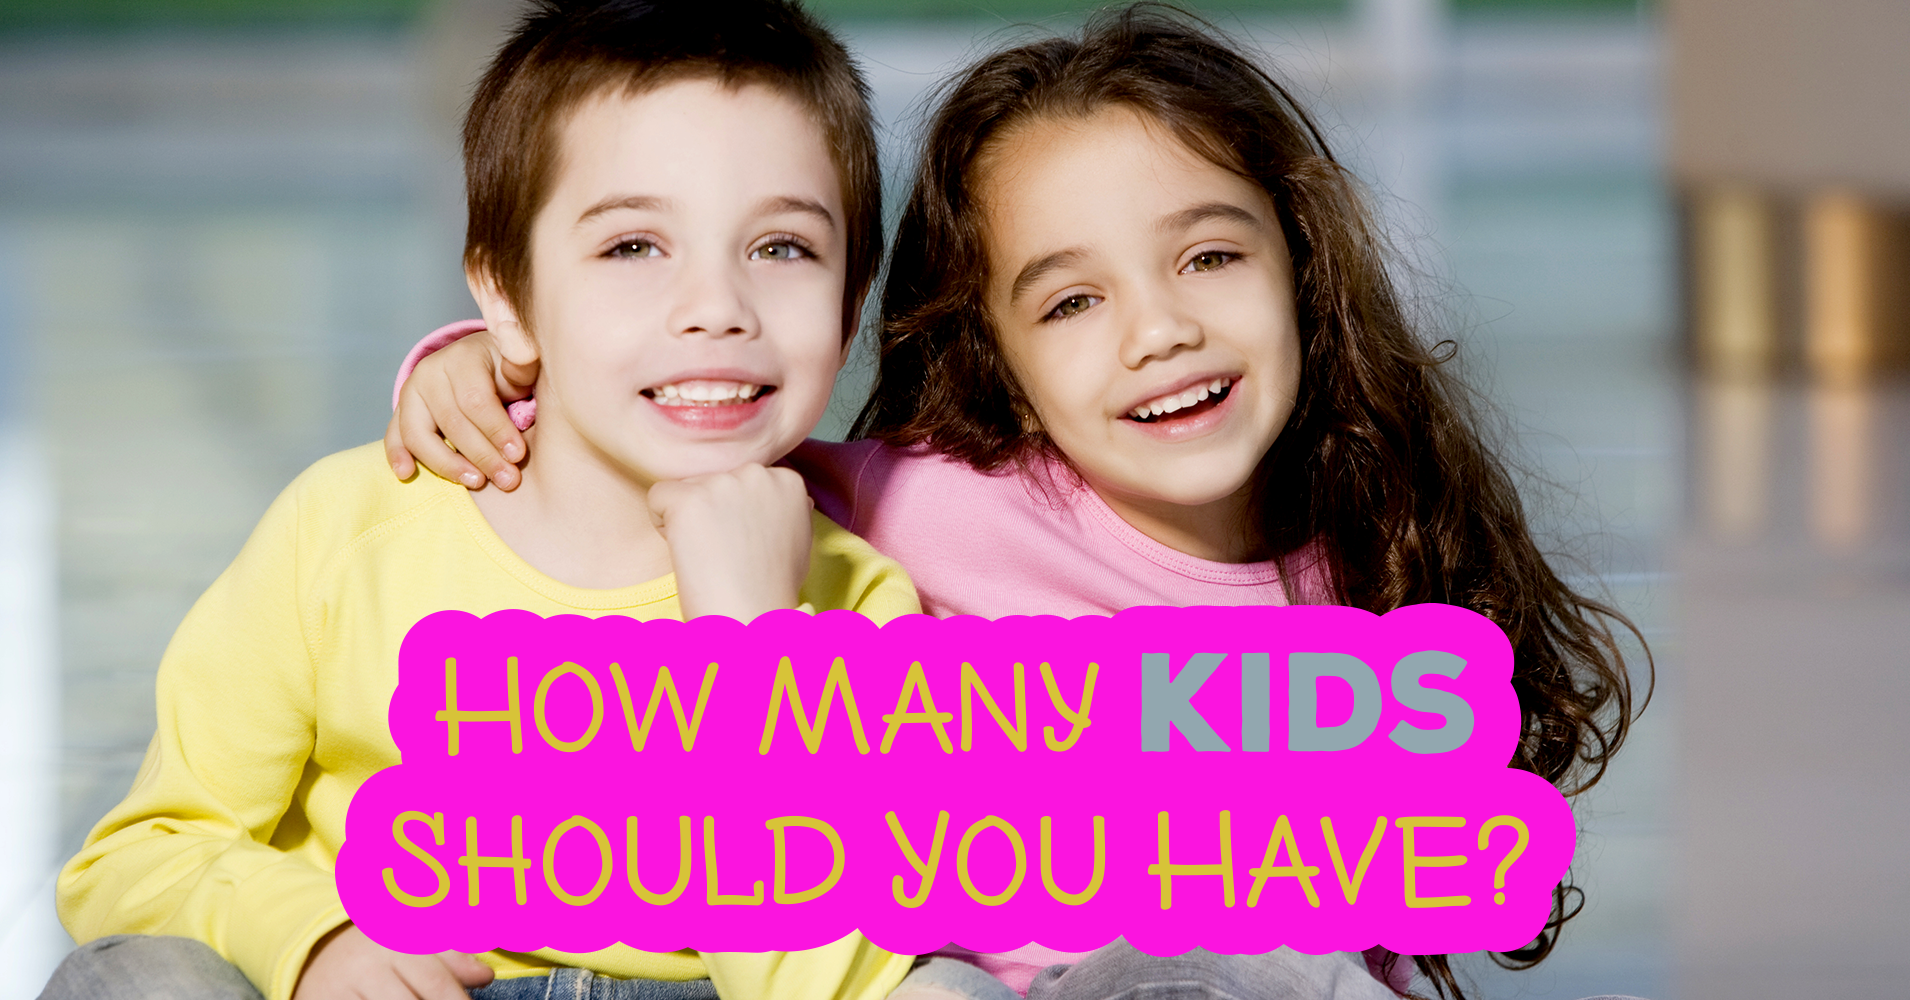 How many children do you think should be in a full-fledged family? 93